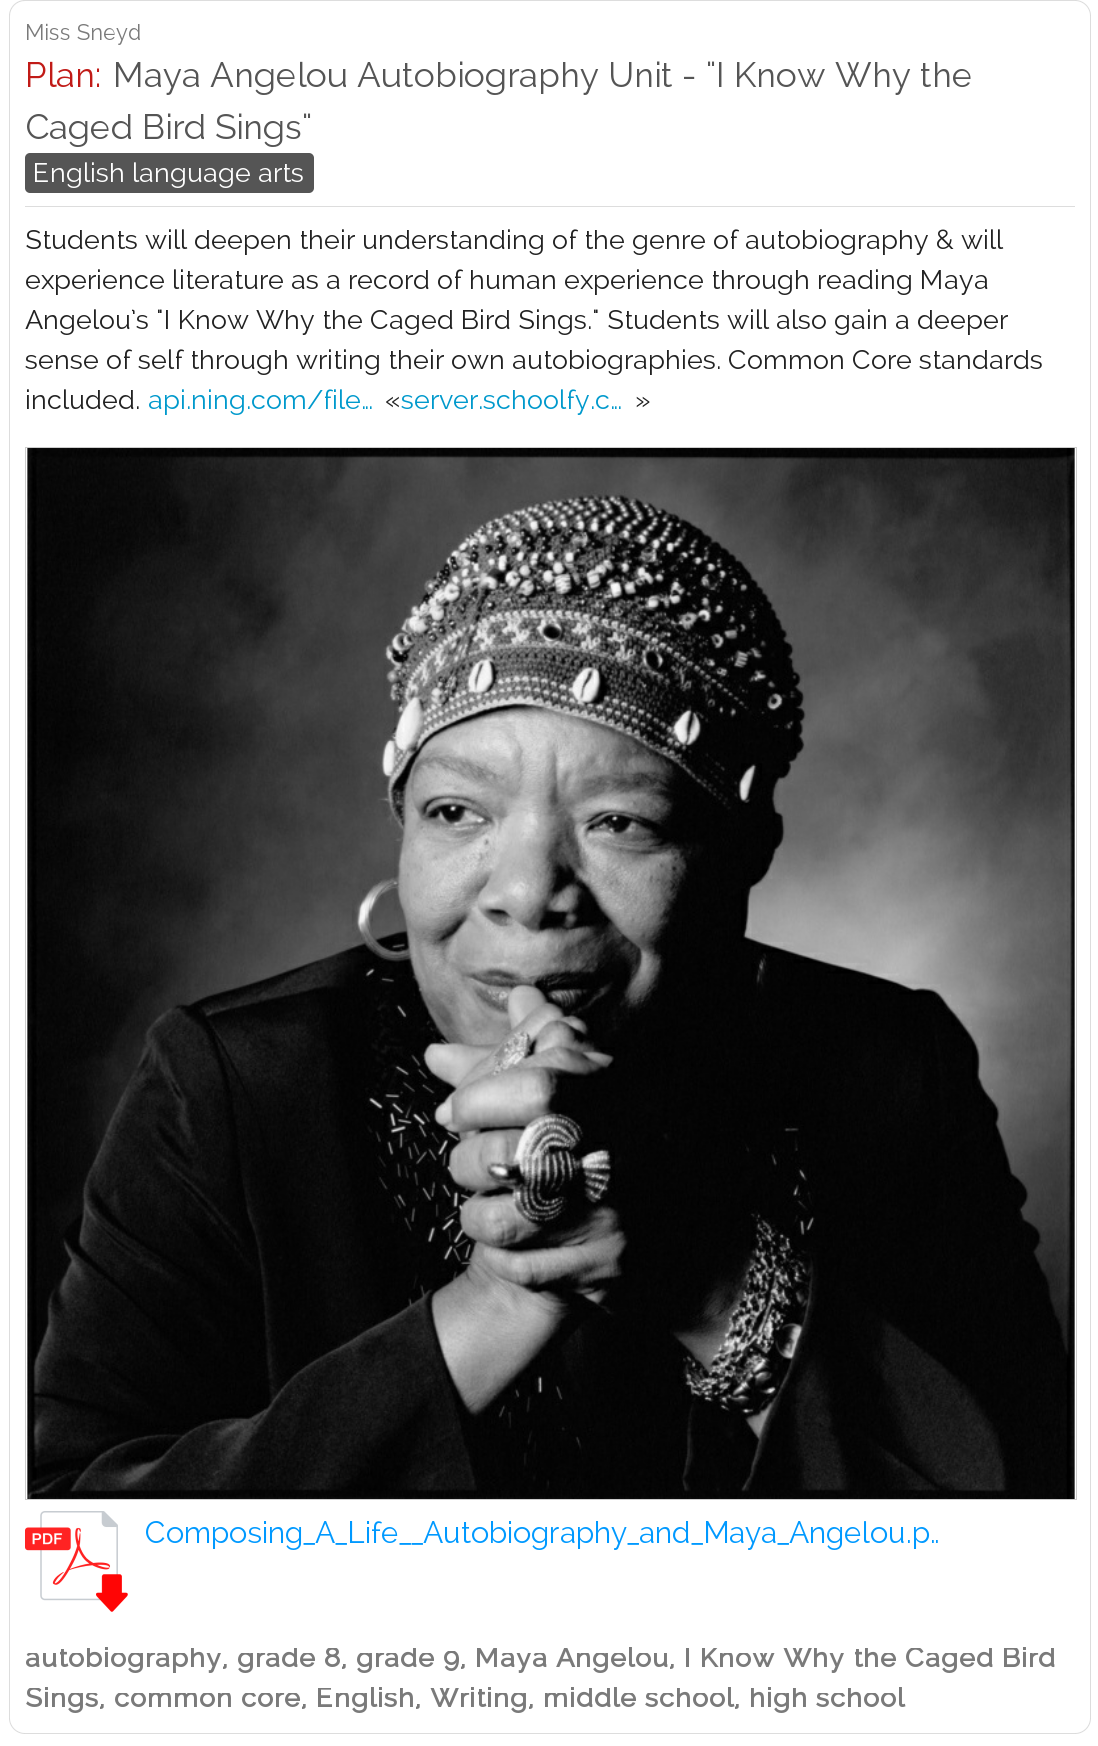 a angelou autobiography unit i know why the caged bird a angelou autobiography unit i know why the caged bird sings